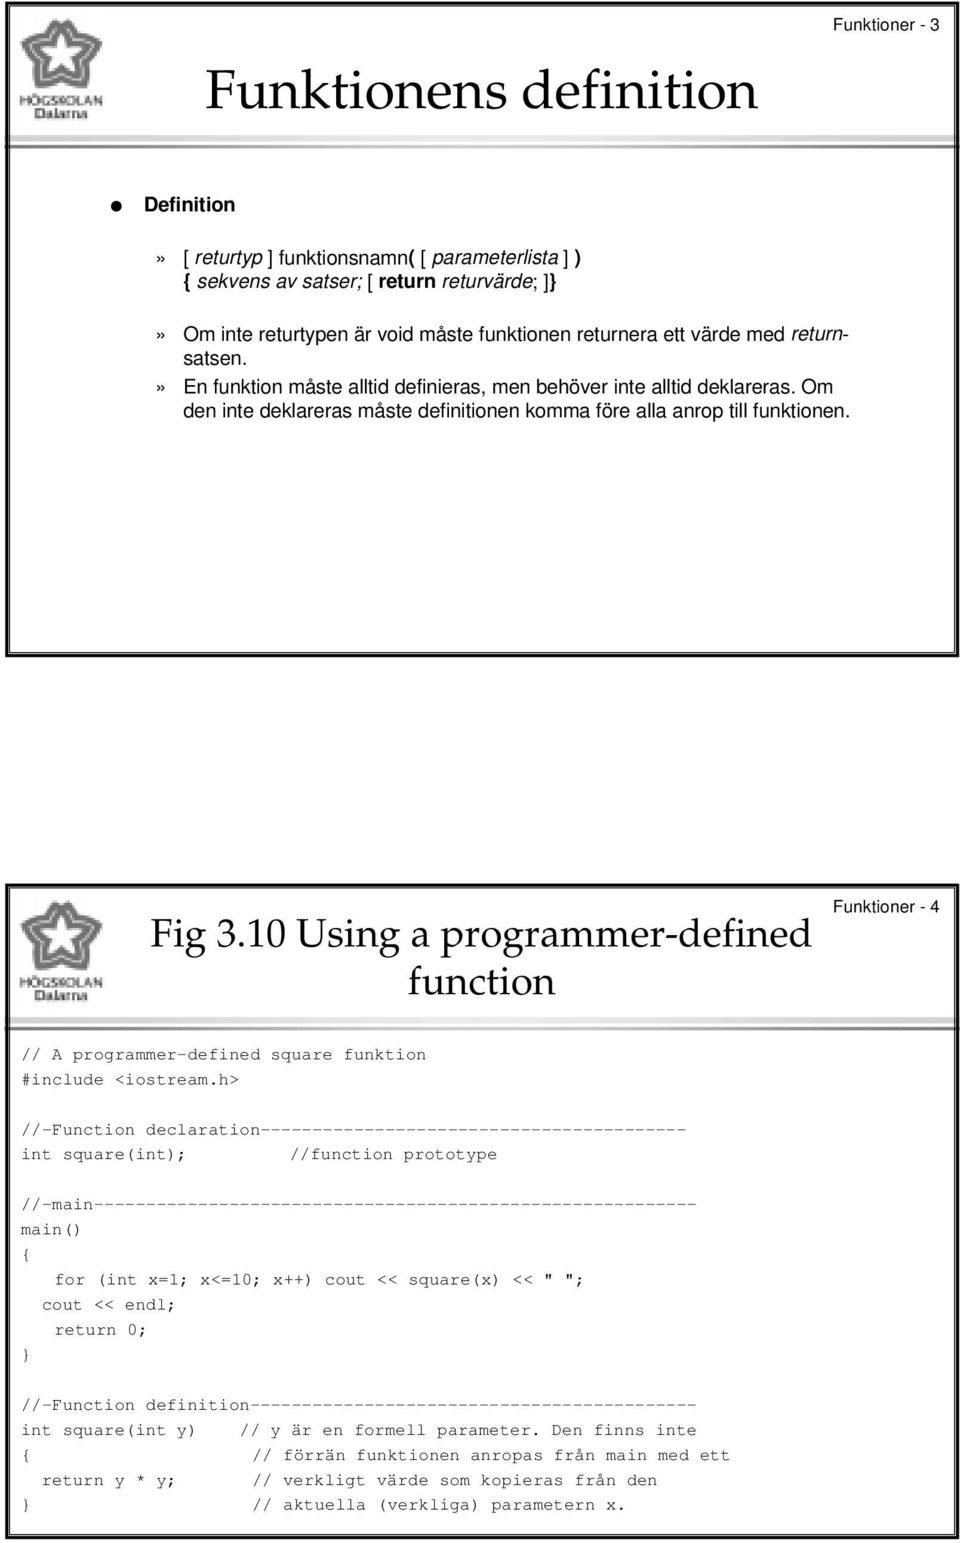 10 Using a programmer-defined function Funktioner - 4 // A programmer-defined square funktion //-Function declaration----------------------------------------- int square(int); //function prototype